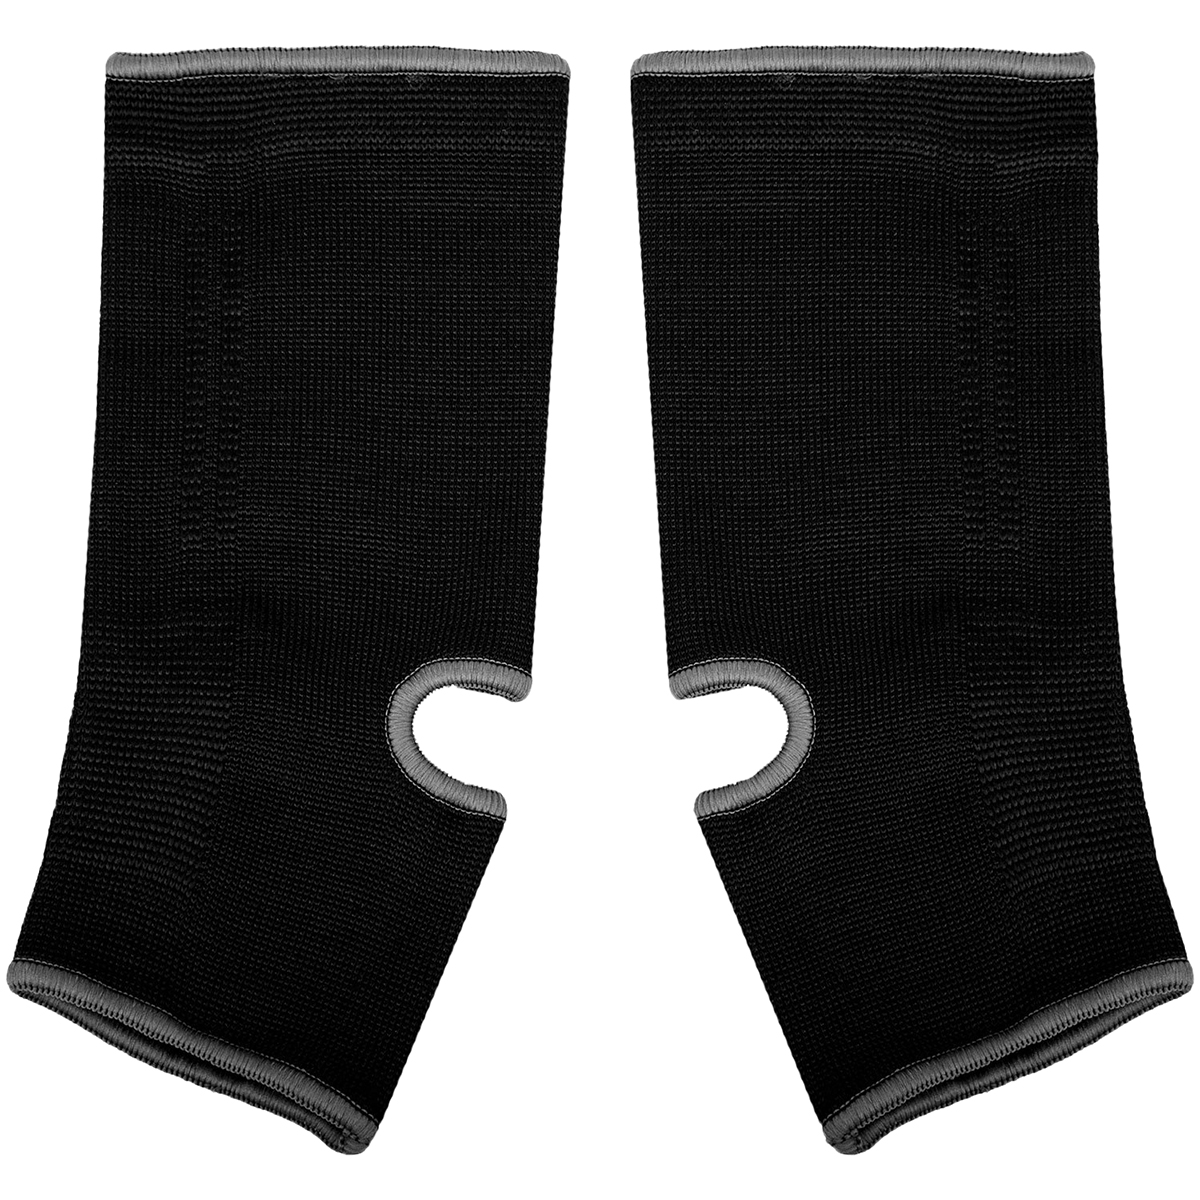 thumbnail 7 - Venum Kontact Slip-On MMA Pro Ankle Support Guards